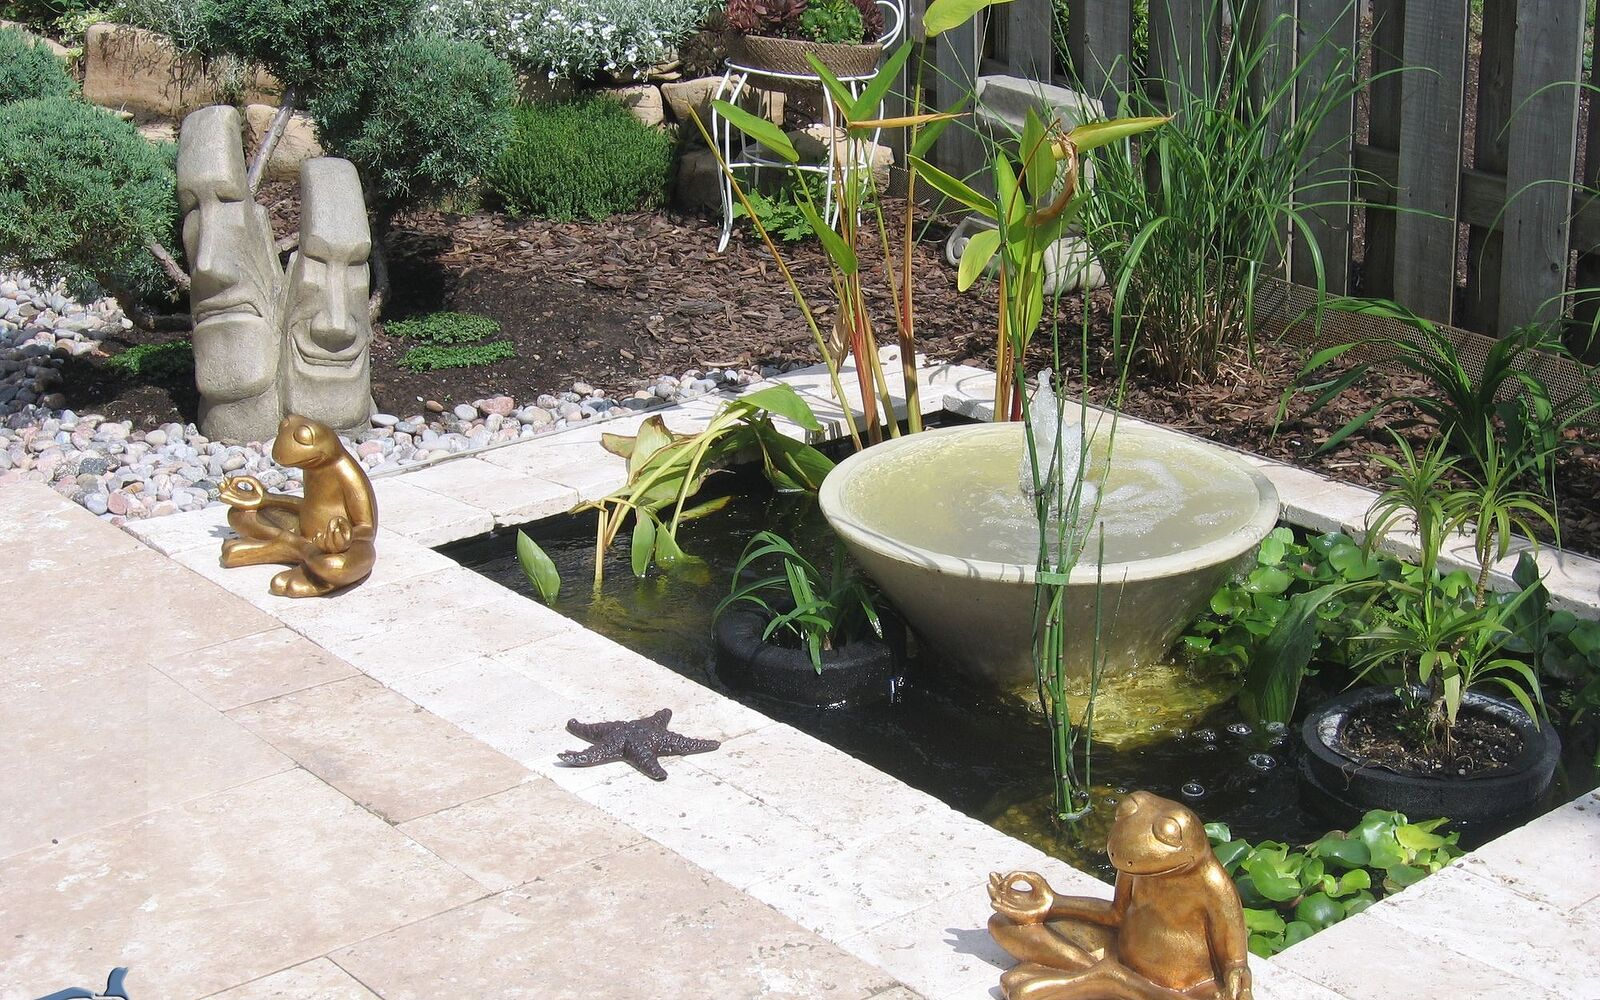 s upgrade your backyard with these 30 clever ideas, Add a tranquil green corner